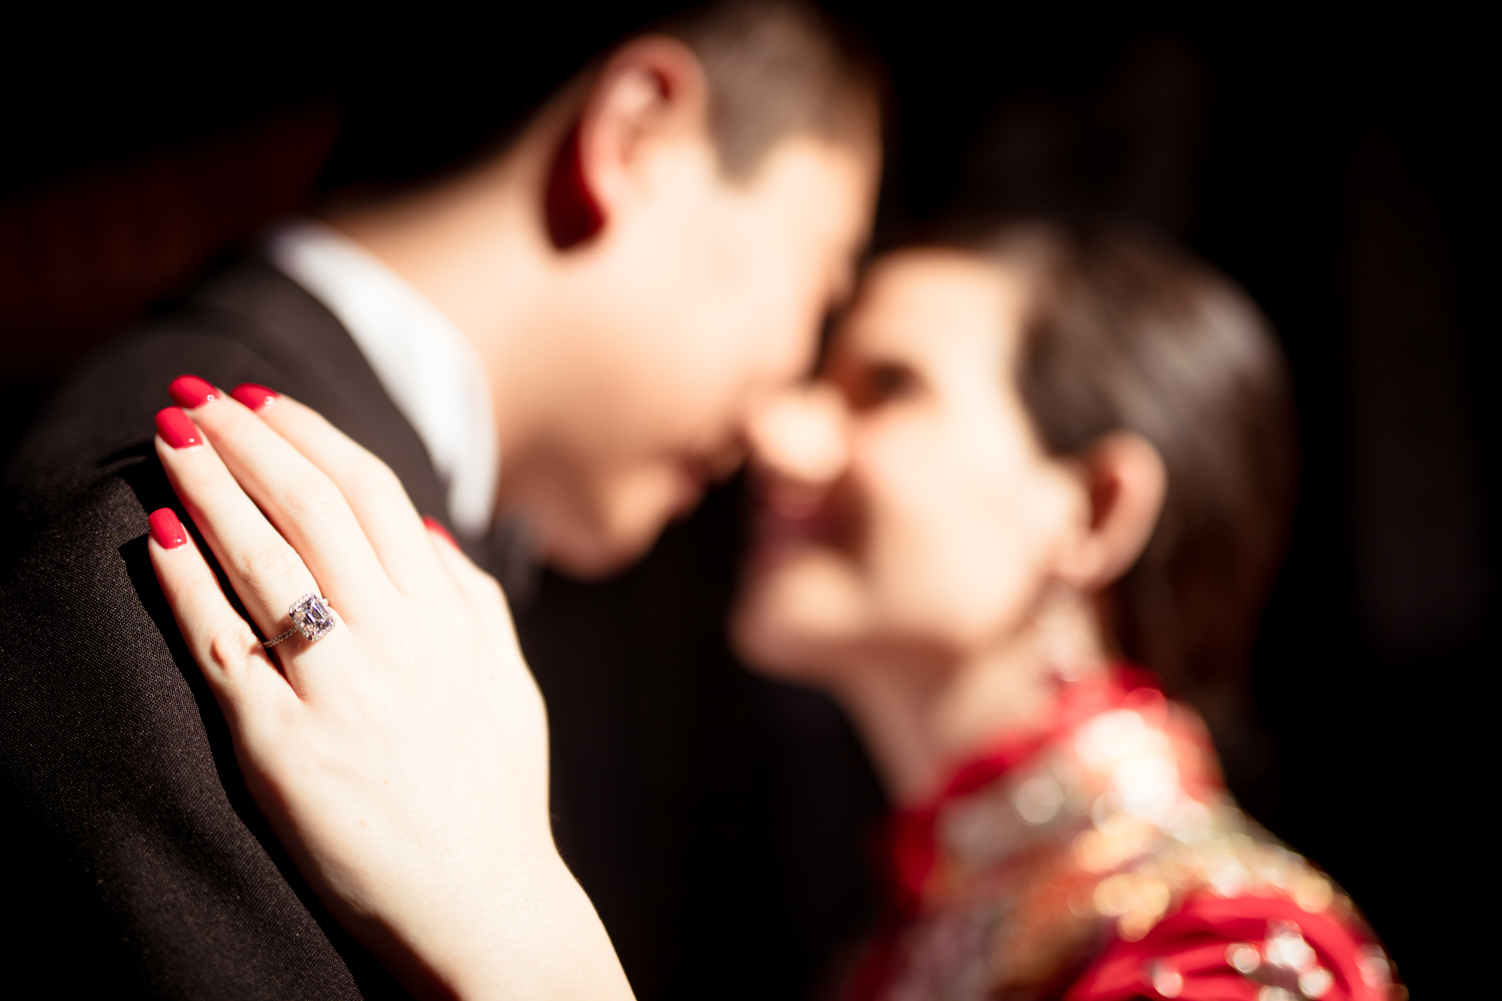 Las Vegas Wedding Planner Andrea Eppolito shares these Hong Kong Engagement Photos taken by  Aperture Photo . Goregous red nails and a big emerald cut diamon!